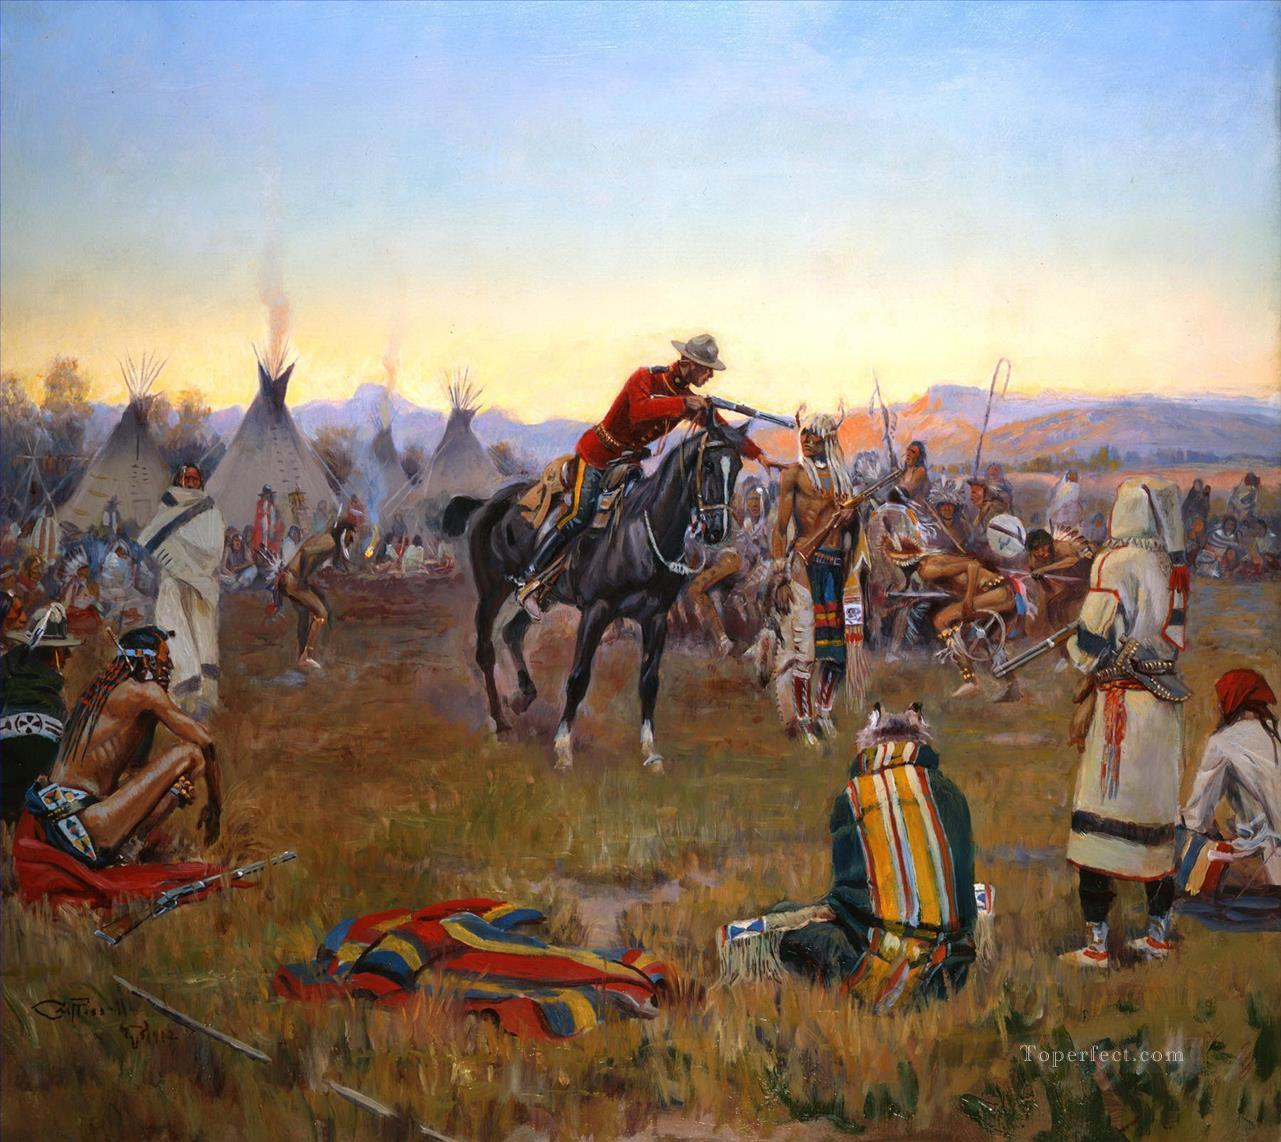 west america indiana 63 Painting in Oil for Sale